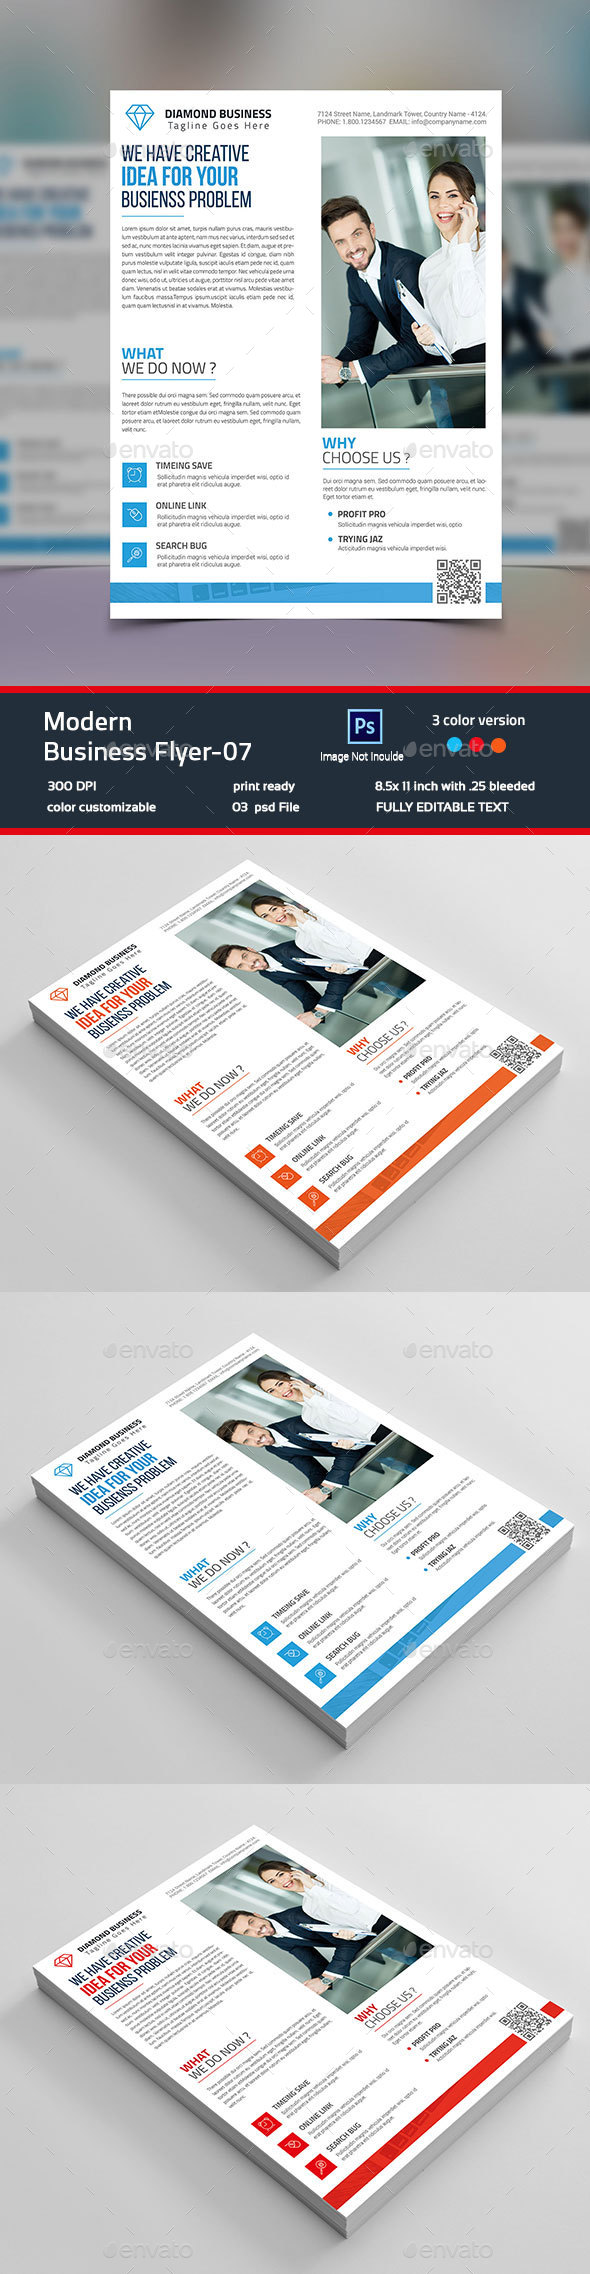 Modern Business Flyer-07 - Corporate Flyers